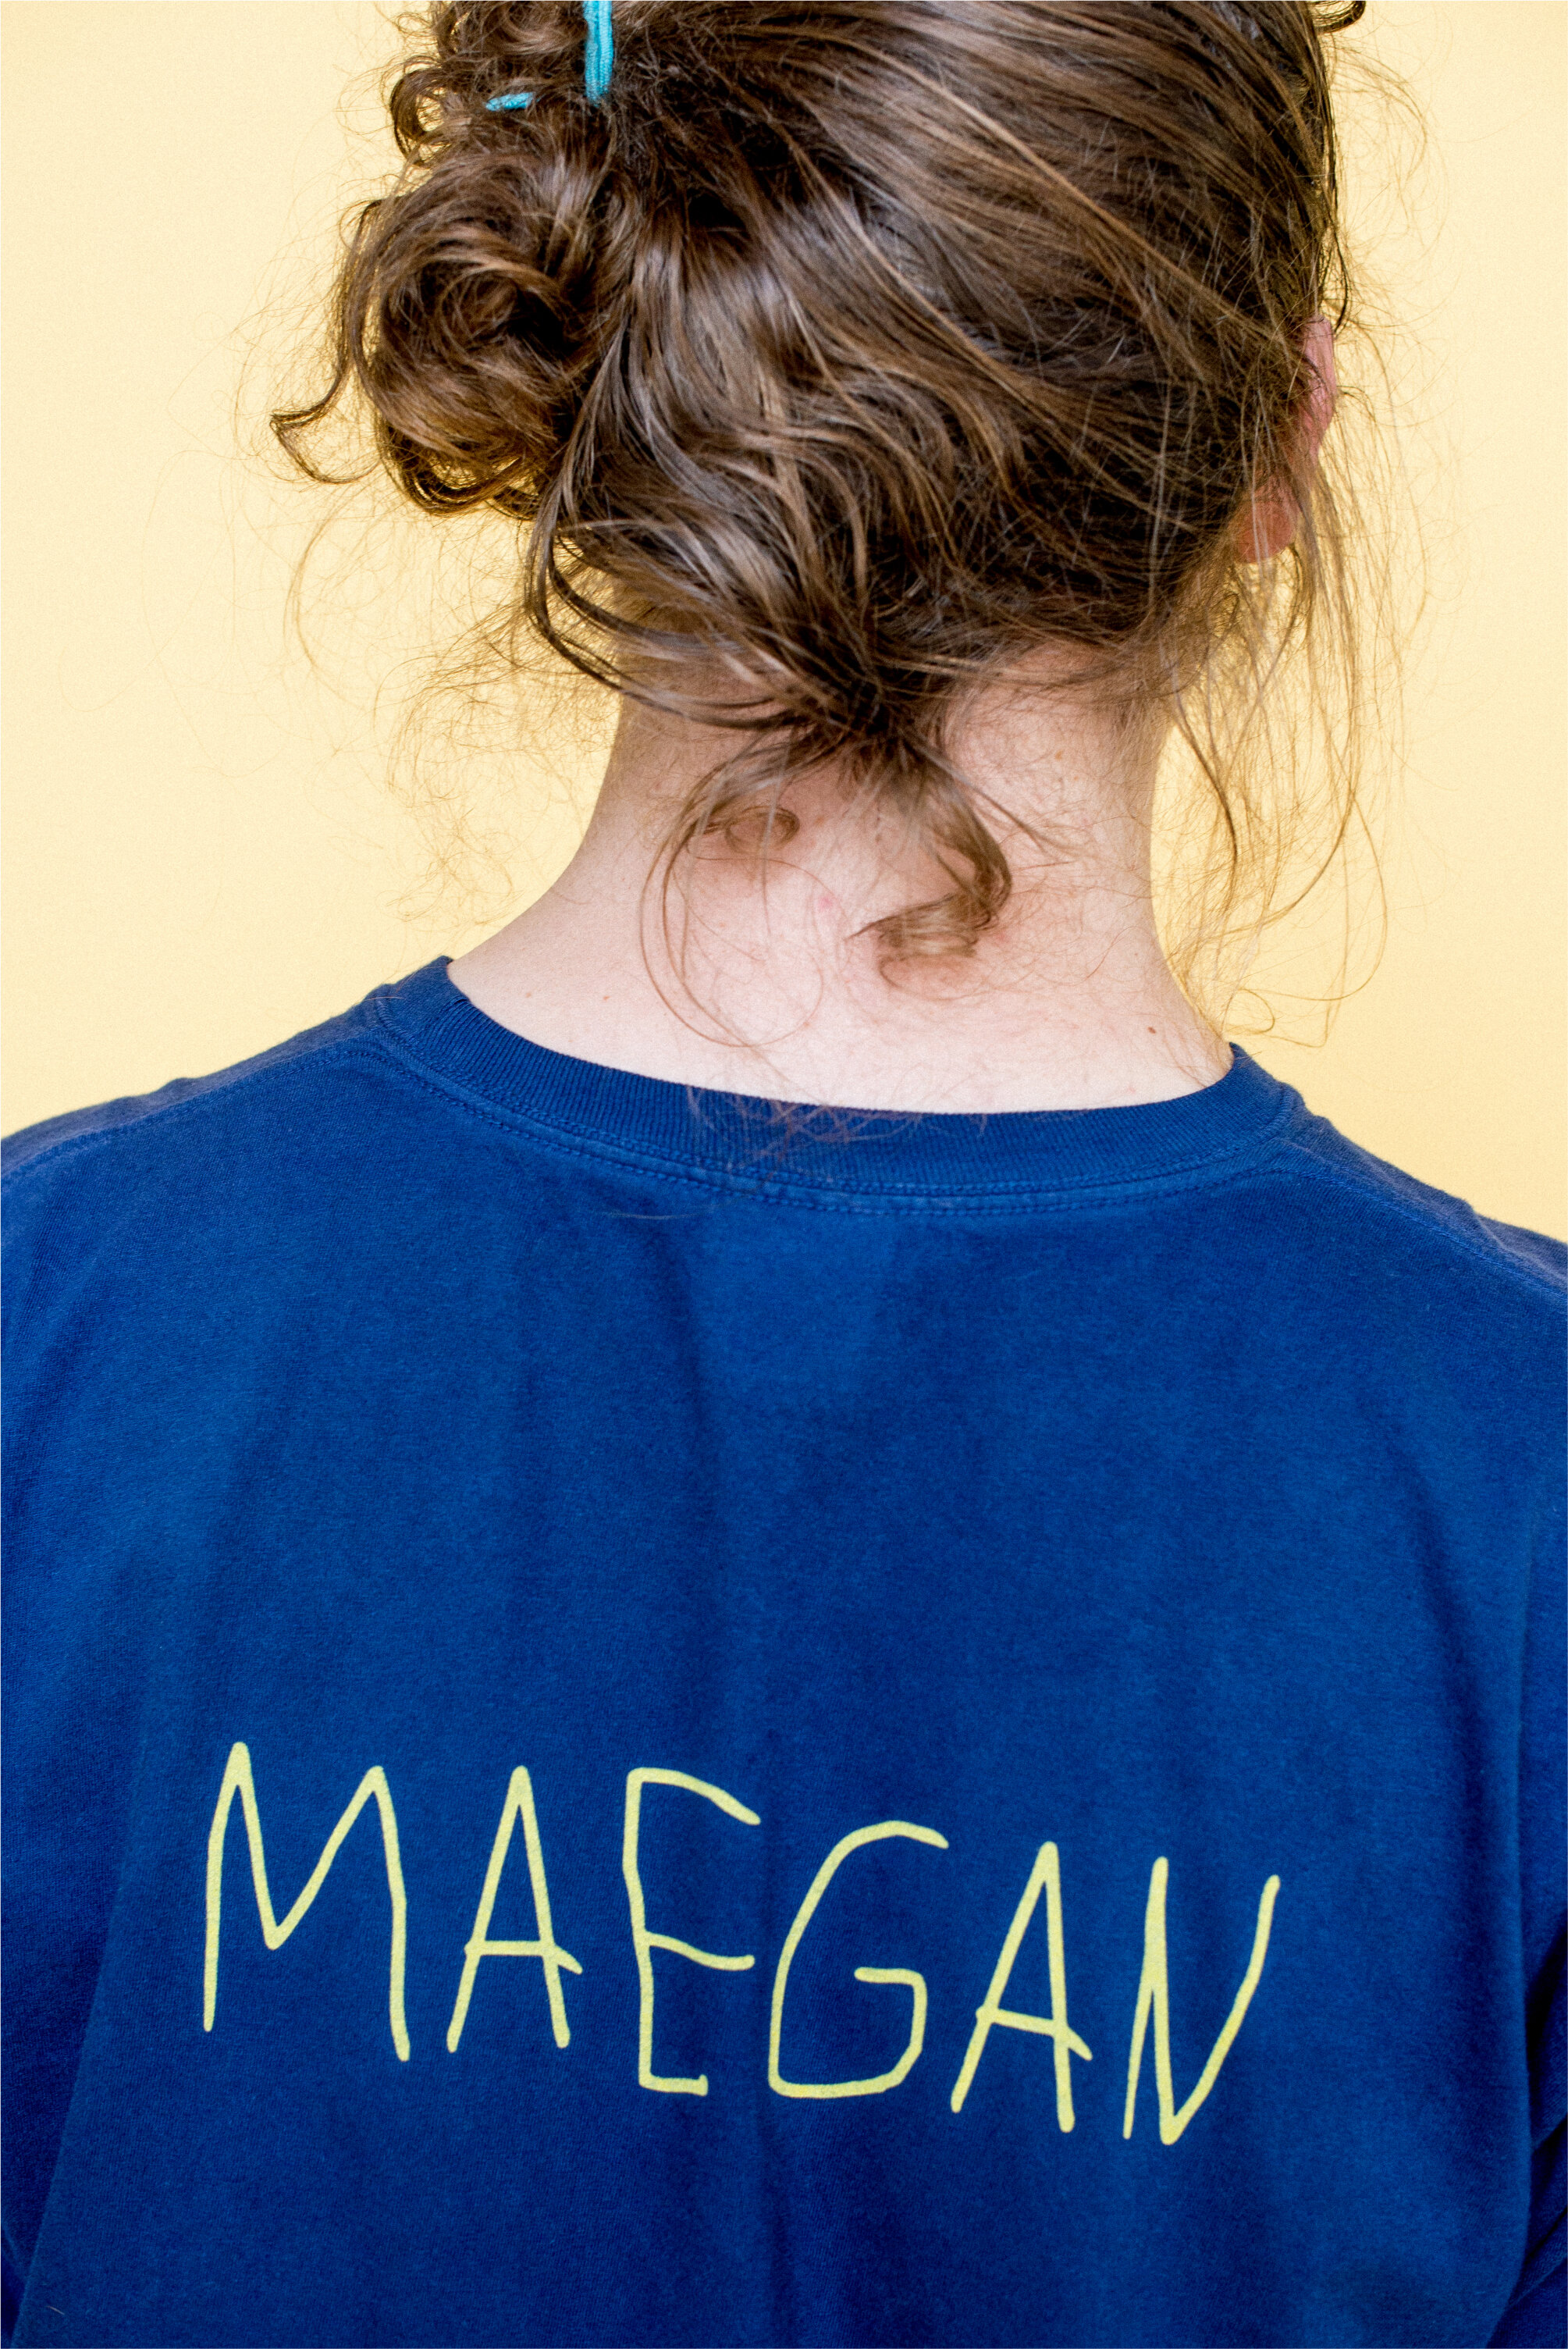 maegan (14 of 14).jpg